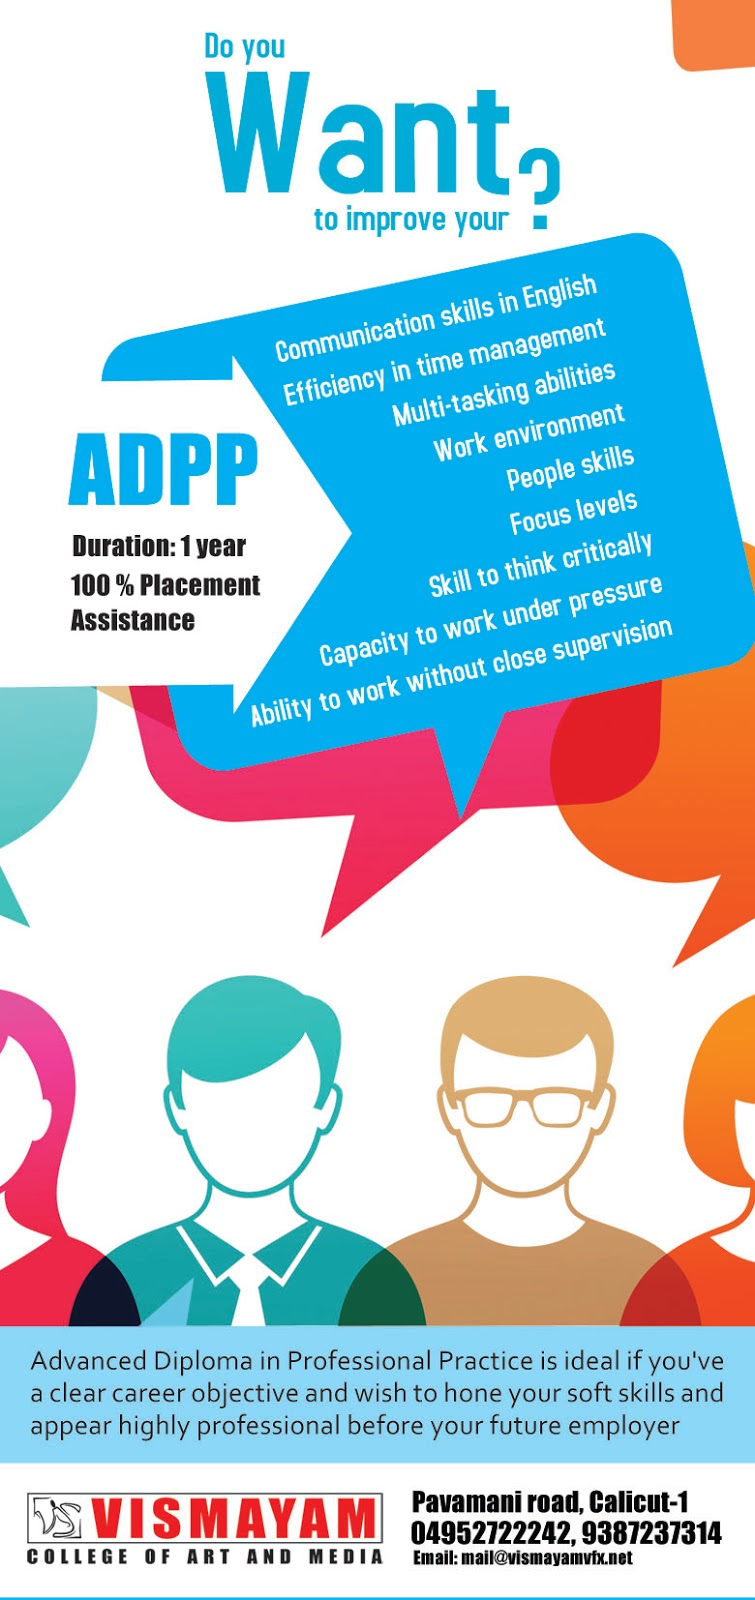 vis am college of art and media know the benefits of joining adpp course vis am college